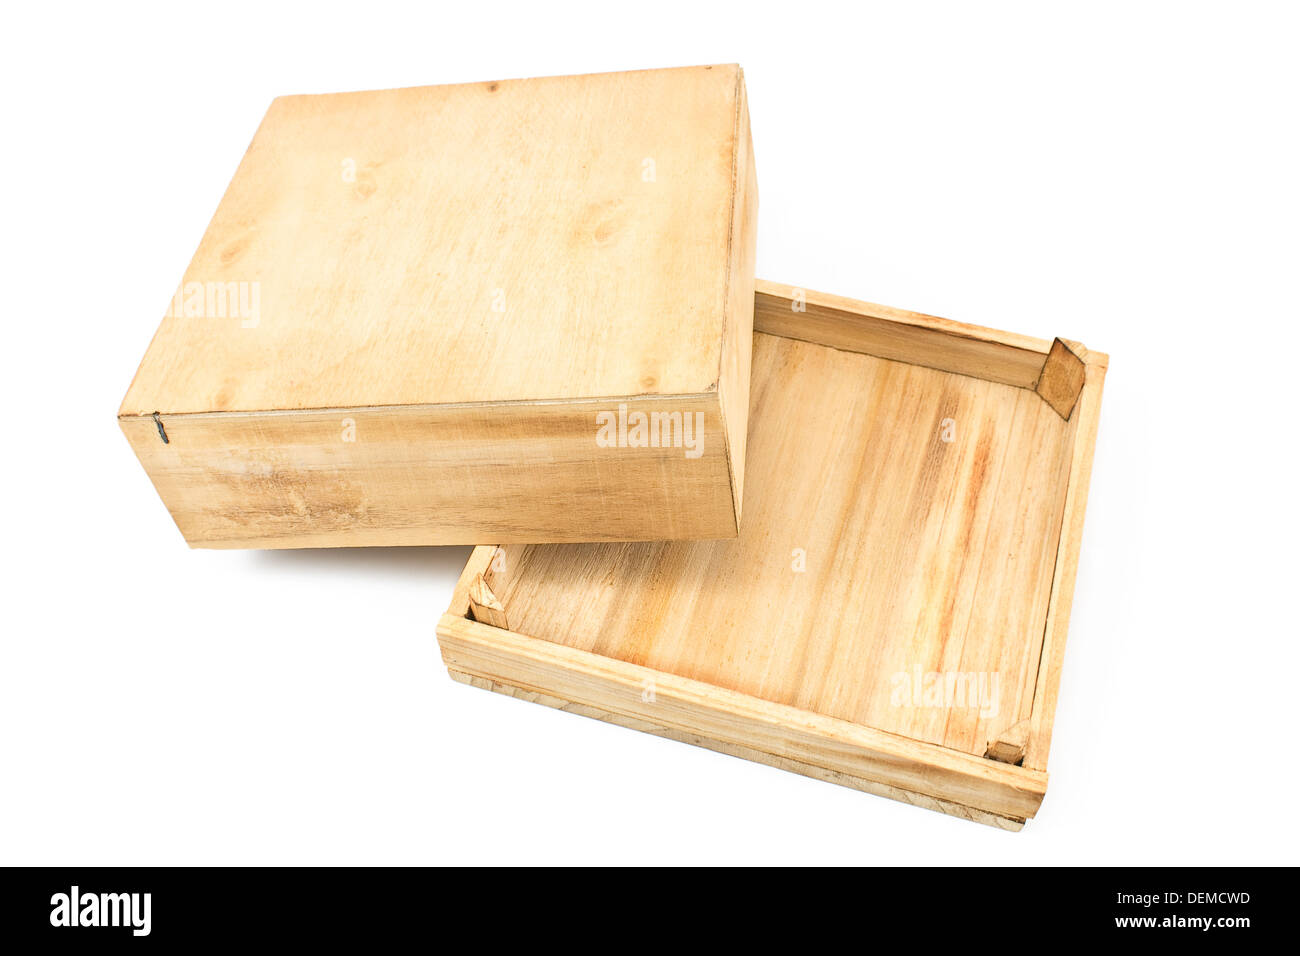 open wooden box isolated on white stock photo 60685449 alamy